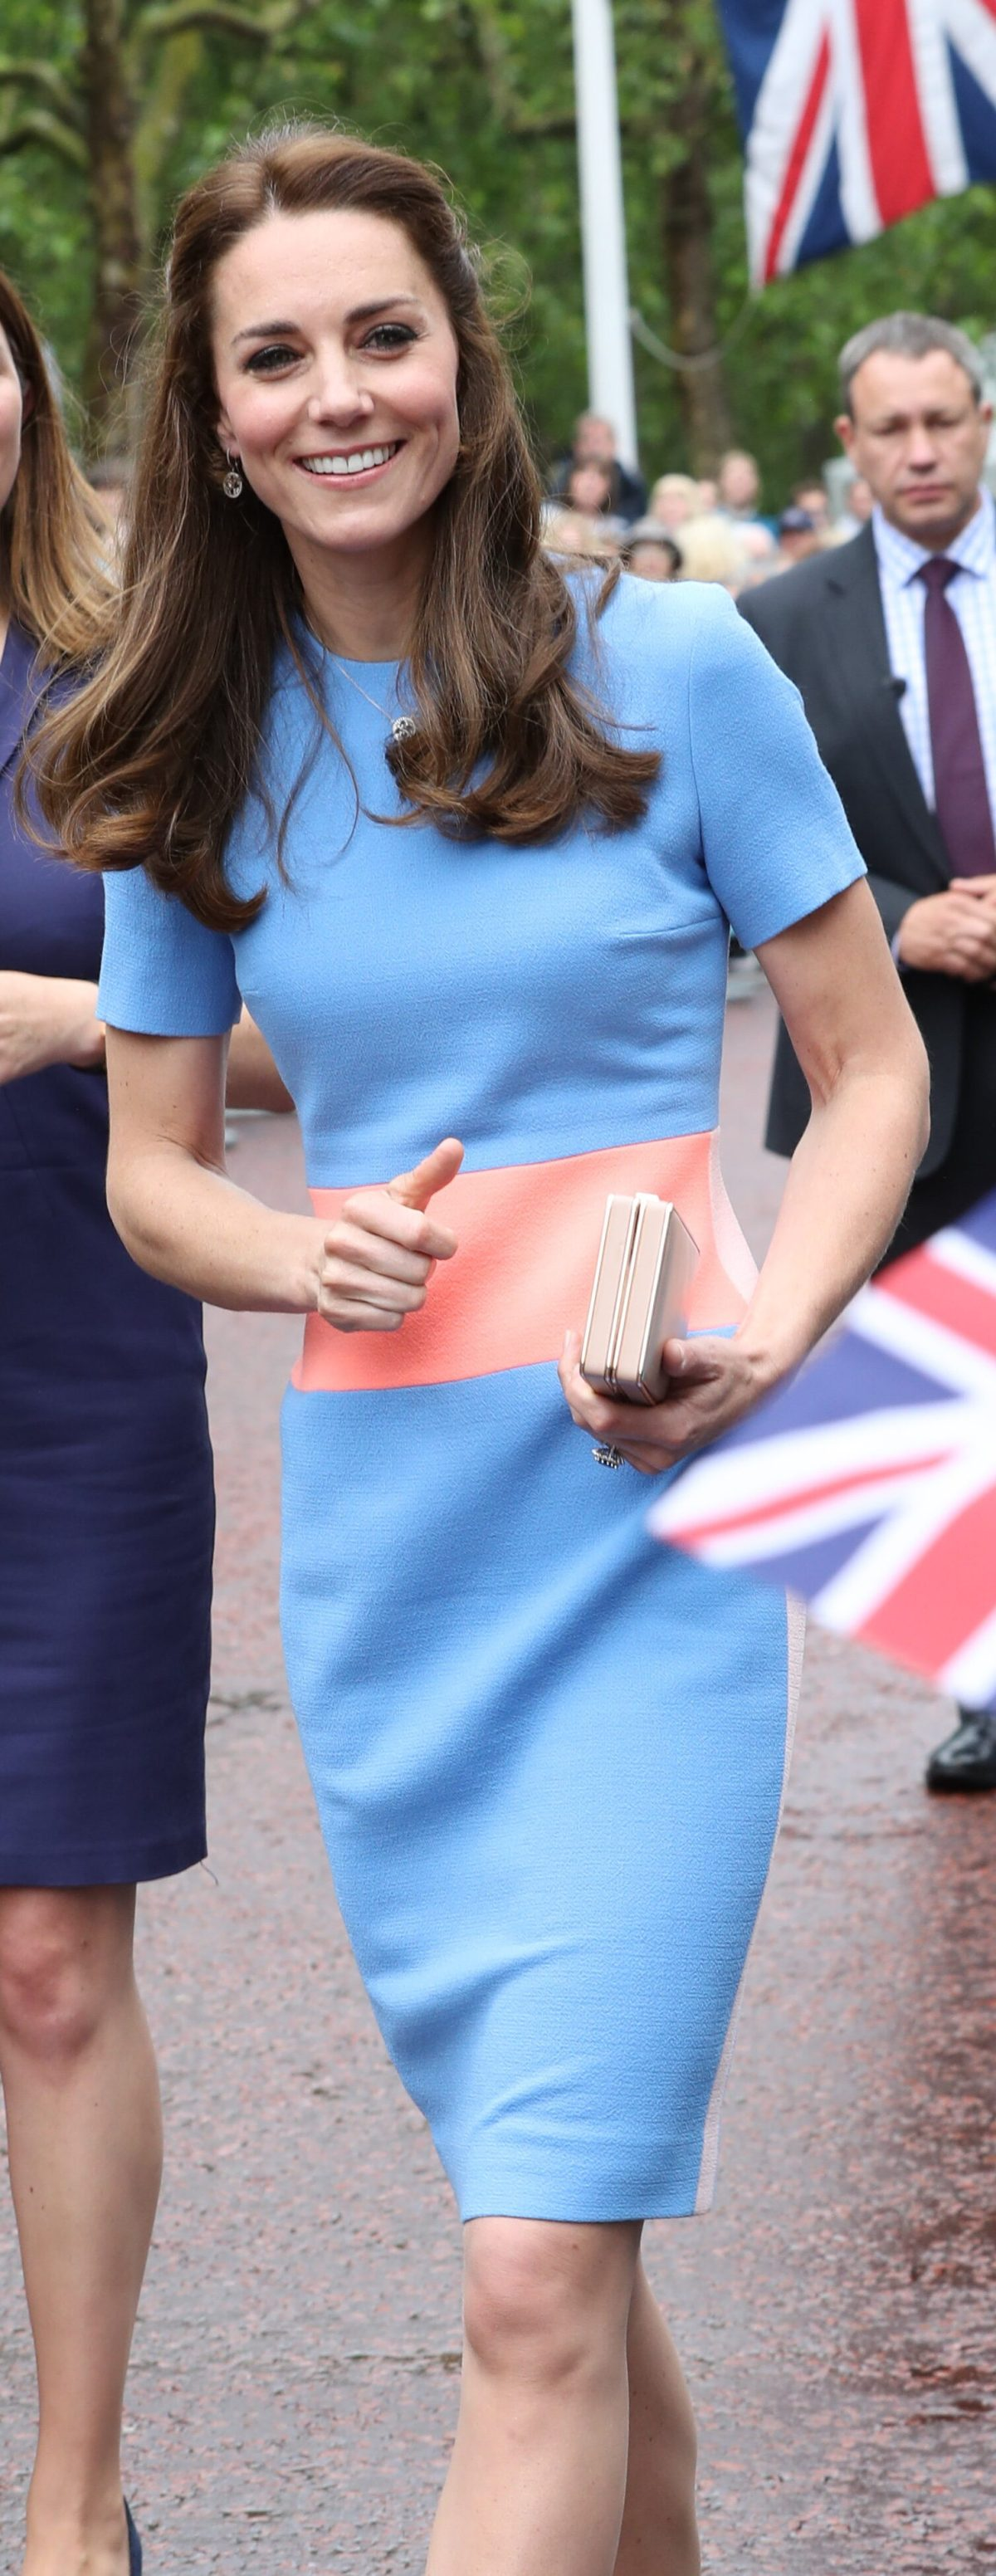 Image licensed to i-Images Picture Agency. 12/06/2016. London, United Kingdom. The Duke and Duchess of Cambridge  at The Patron's lunch on The Mall in London, at the end of three days of events to mark Her Majesty's 90th birthday.  Picture by Stephen Lock / i-Images